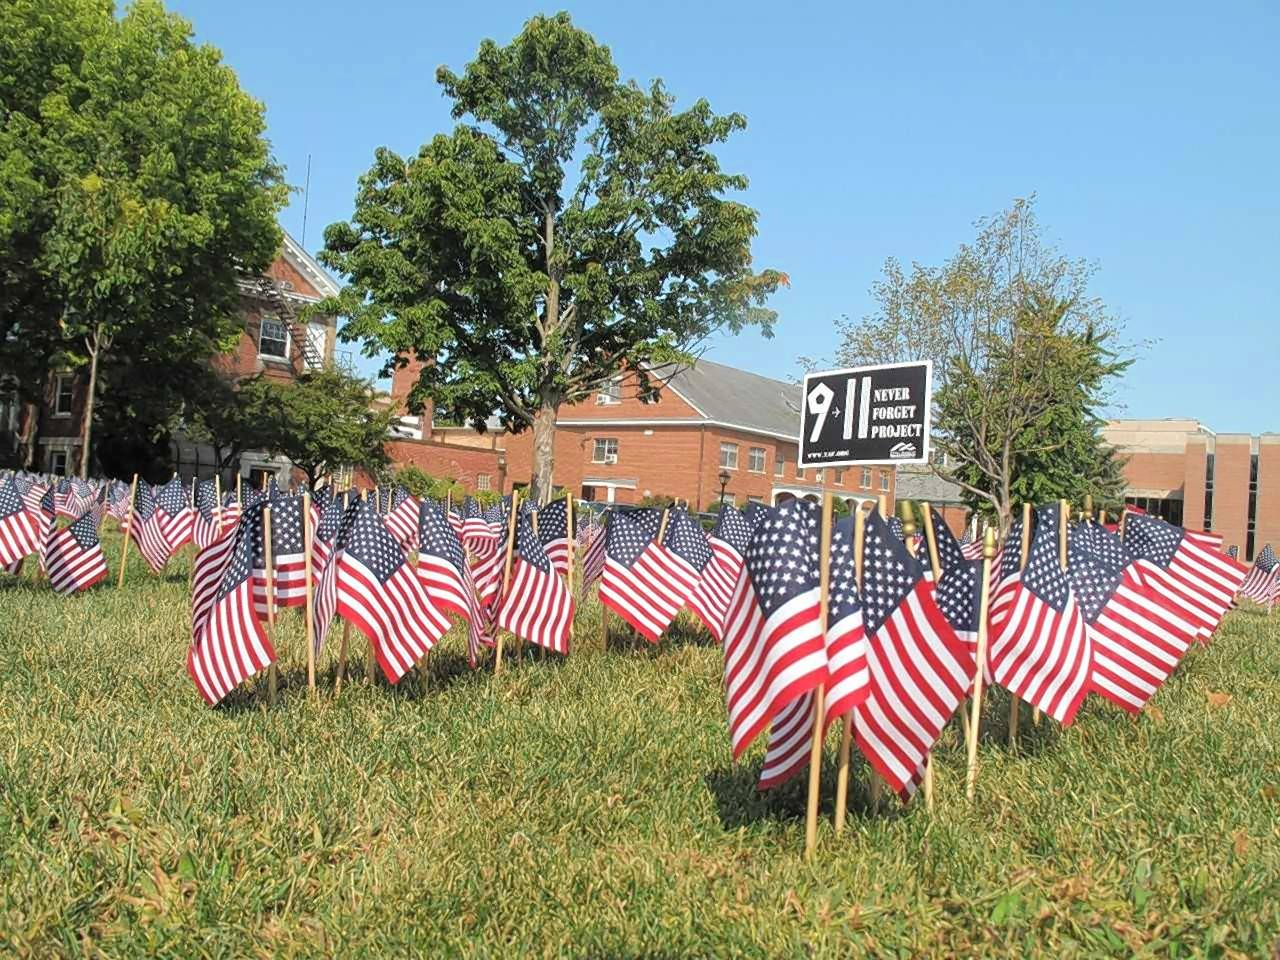 Flags to represent the life of each person who died in the Sept. 11 terrorist attacks catch students' attention on Monday at Wheaton College.